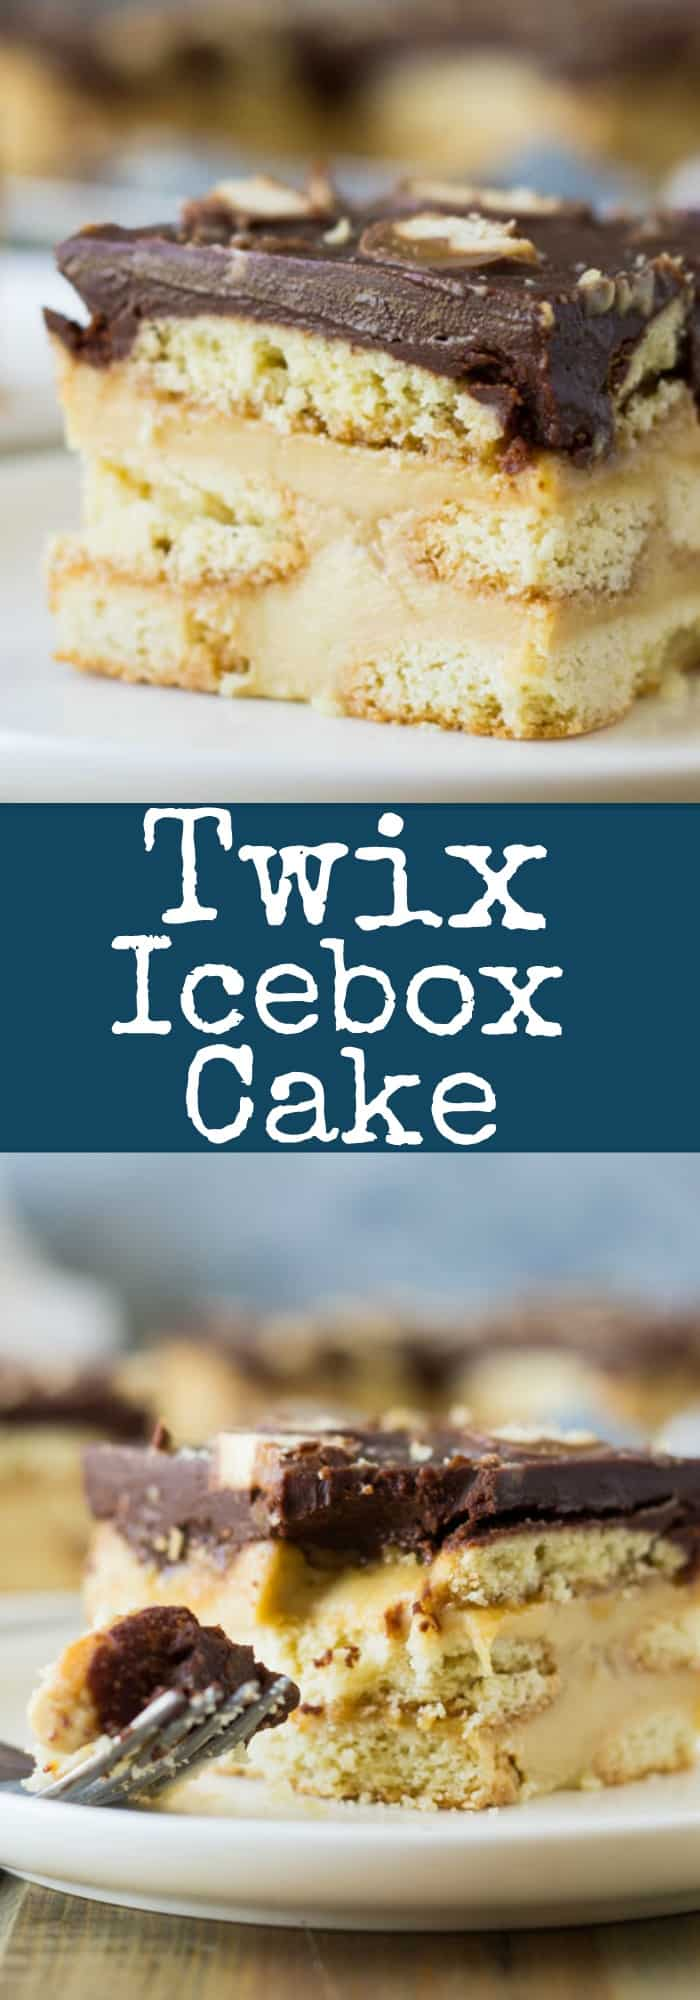 This Twix Icebox Cake is an easy and decadent no-bake cake. Made with homemade pudding, shortbread cookies, caramel and chocolate!   www.countrysidecravings.com